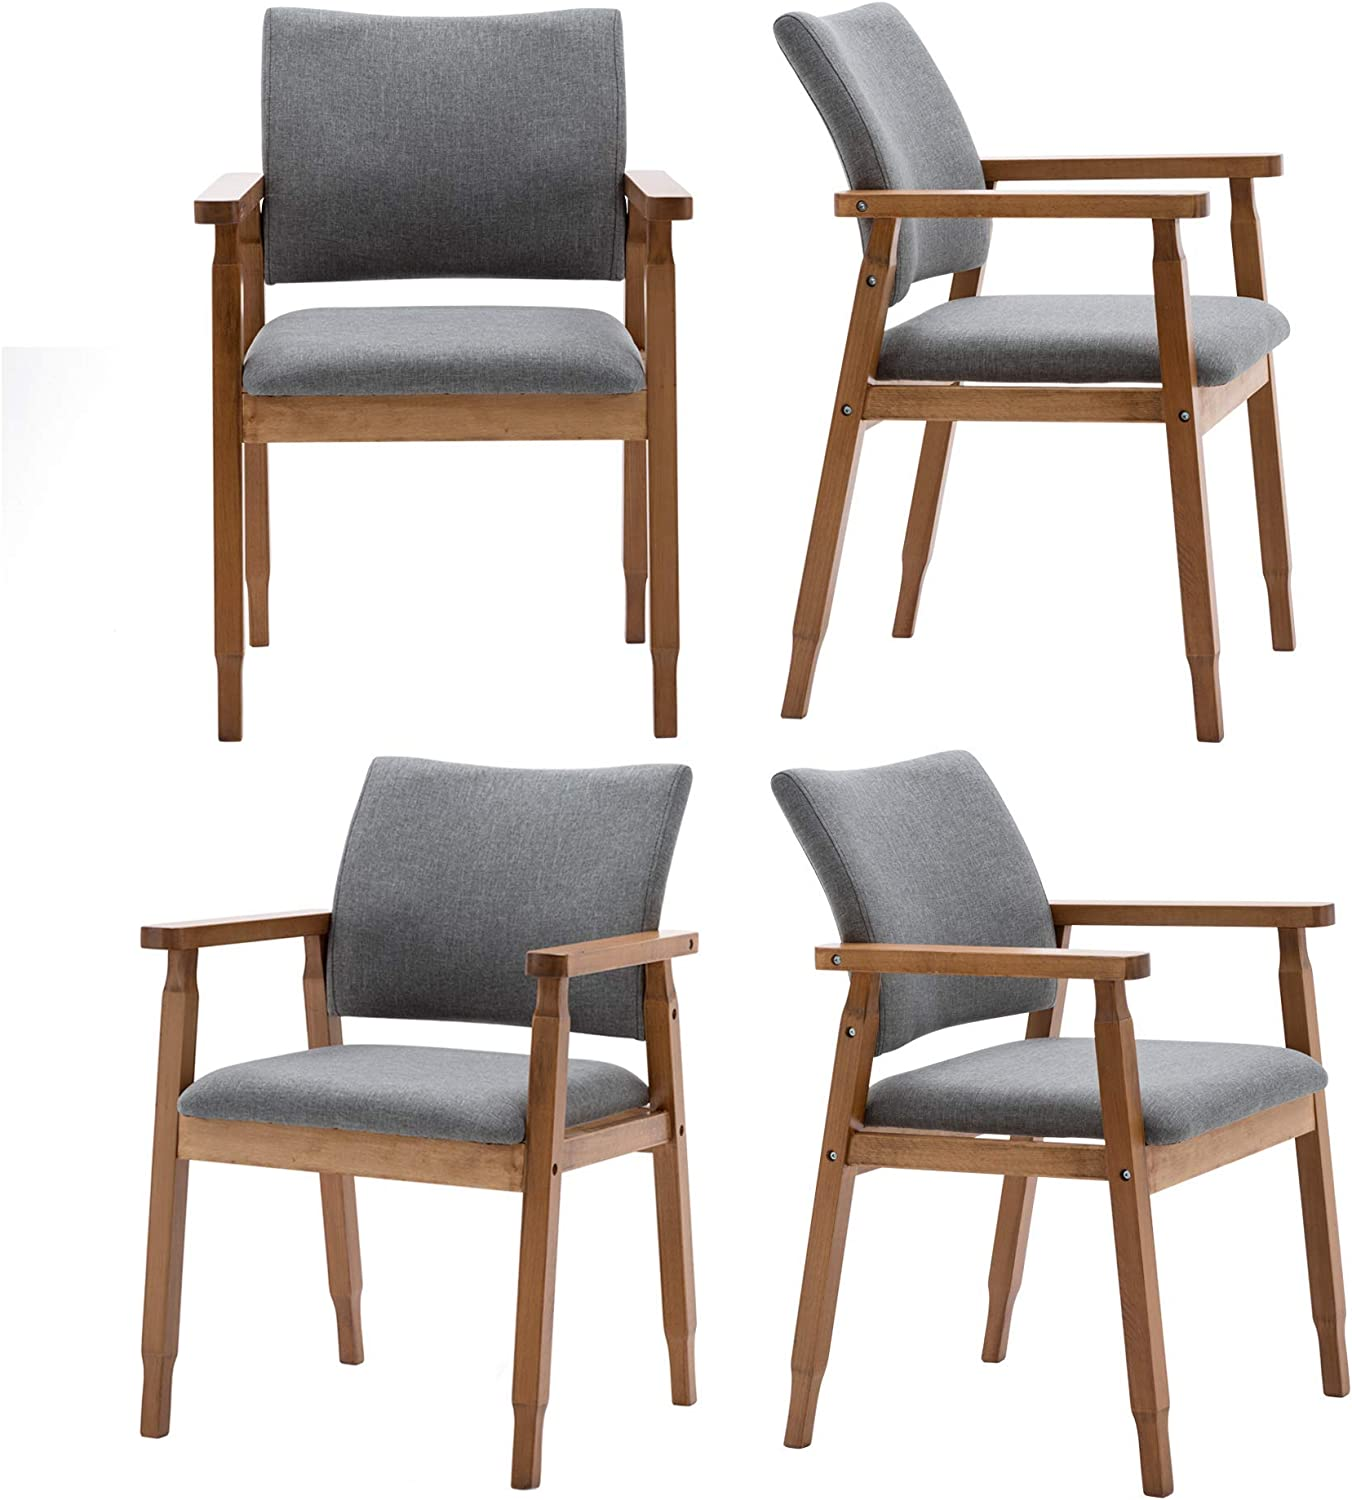 Set of 8 Mid Century Modern Walnut Dining Chairs Wood Arm Grey Fabric  Kitchen Cafe Living Room Decor Furniture